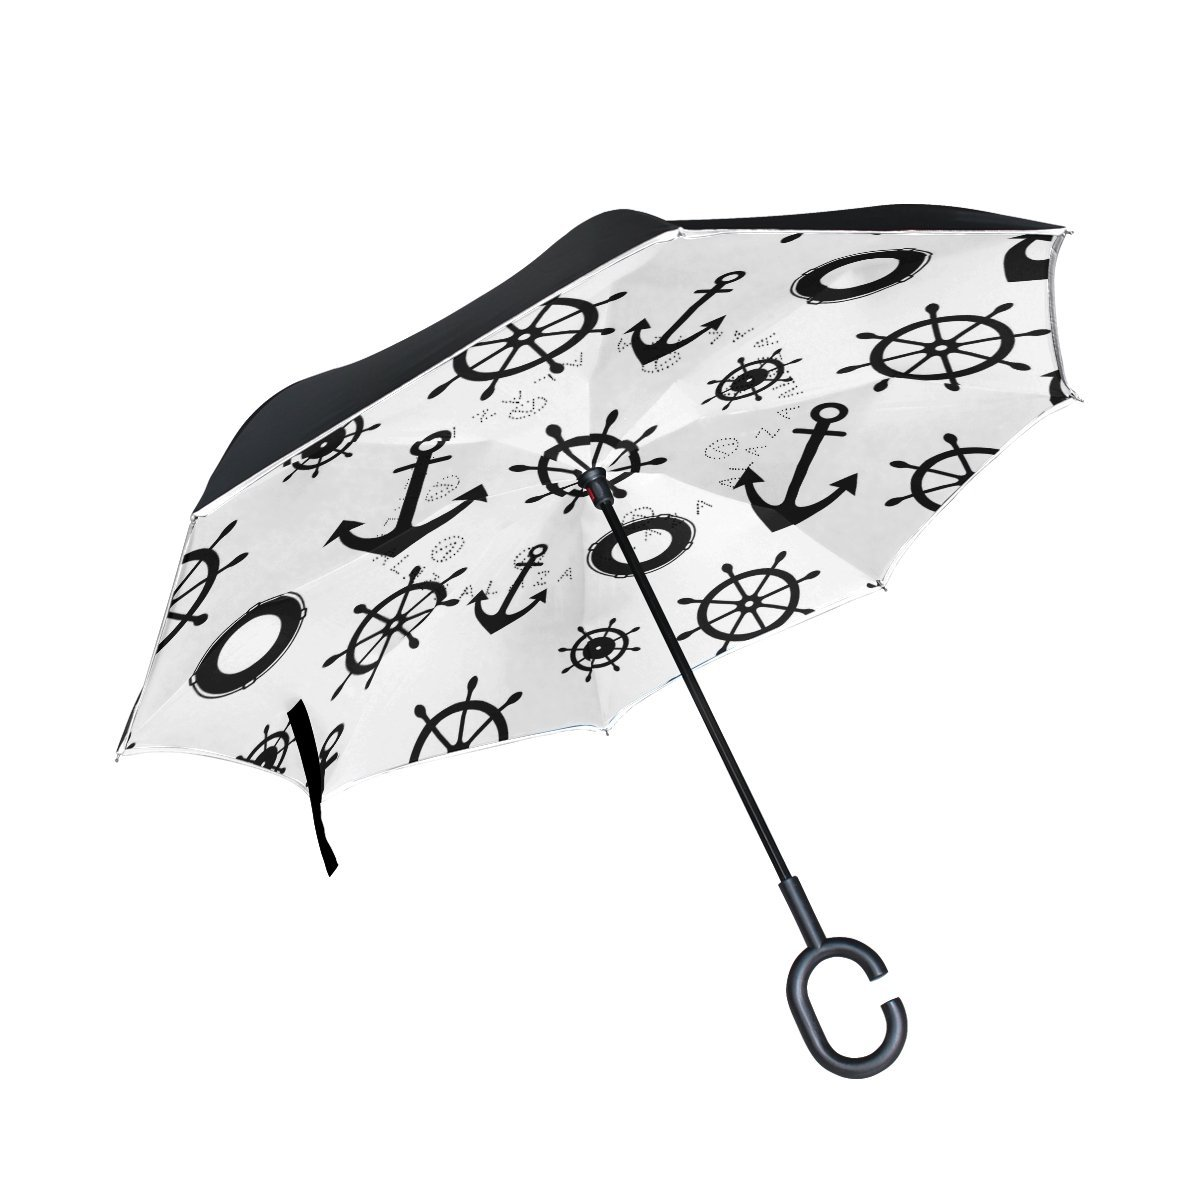 5dcd93240236 Cheap Nautical Umbrella, find Nautical Umbrella deals on line at ...